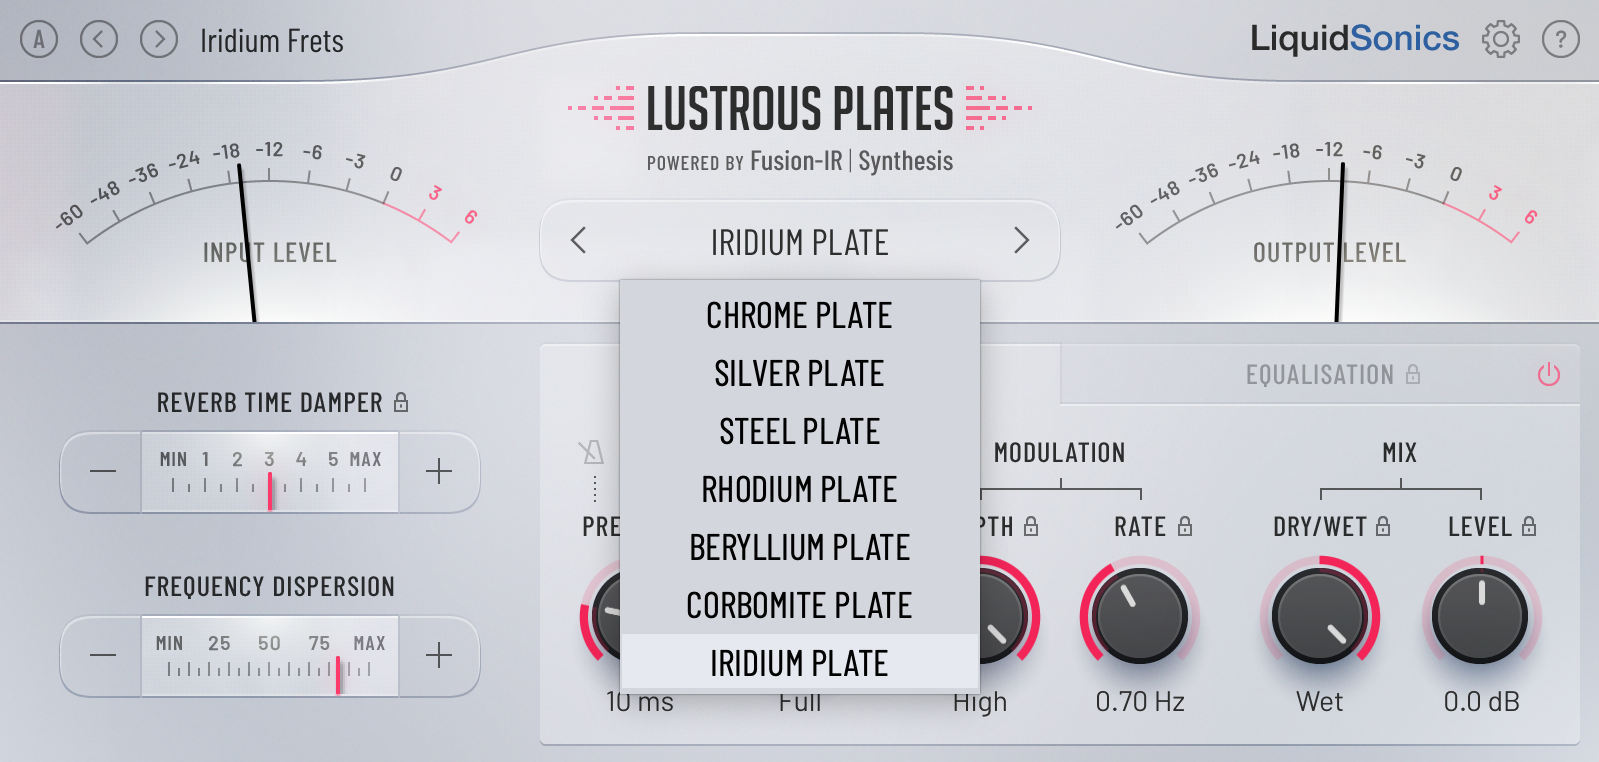 Lustrous Plates - Light Theme